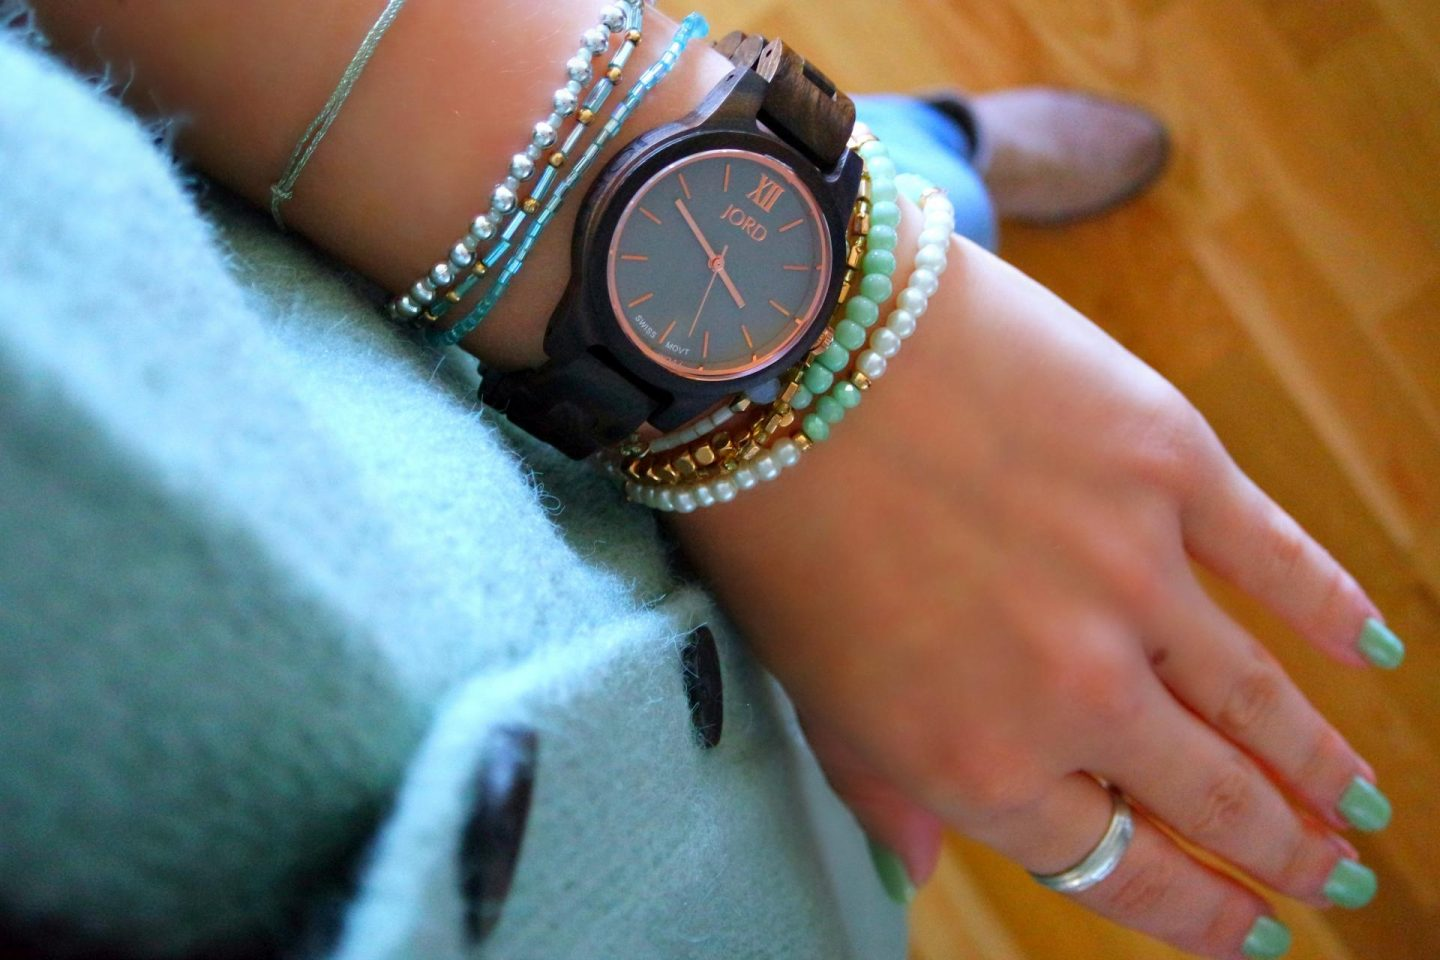 A brown wooden watch with a purply face on a wrist with turquoise bracelets and matching jumper